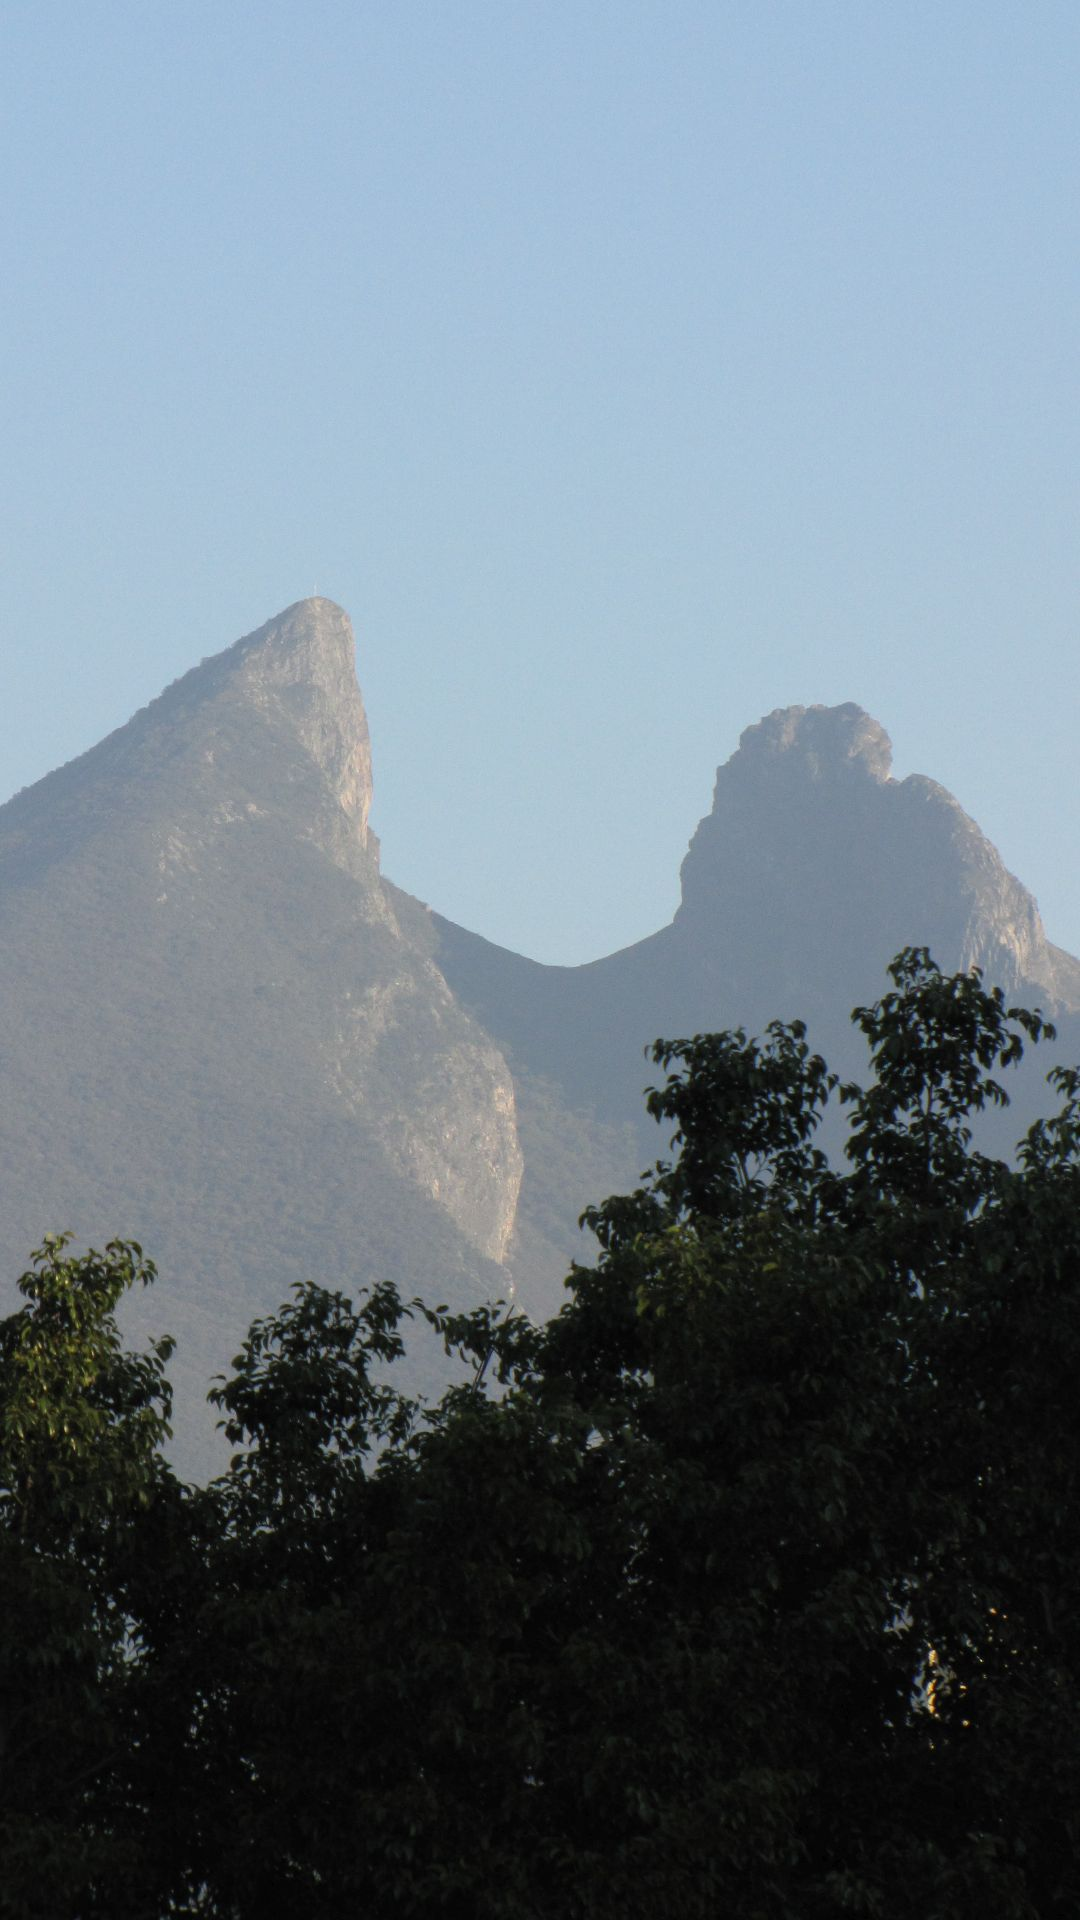 Monterrey, NL, Mexico - ... the saddleback mountain just outside town